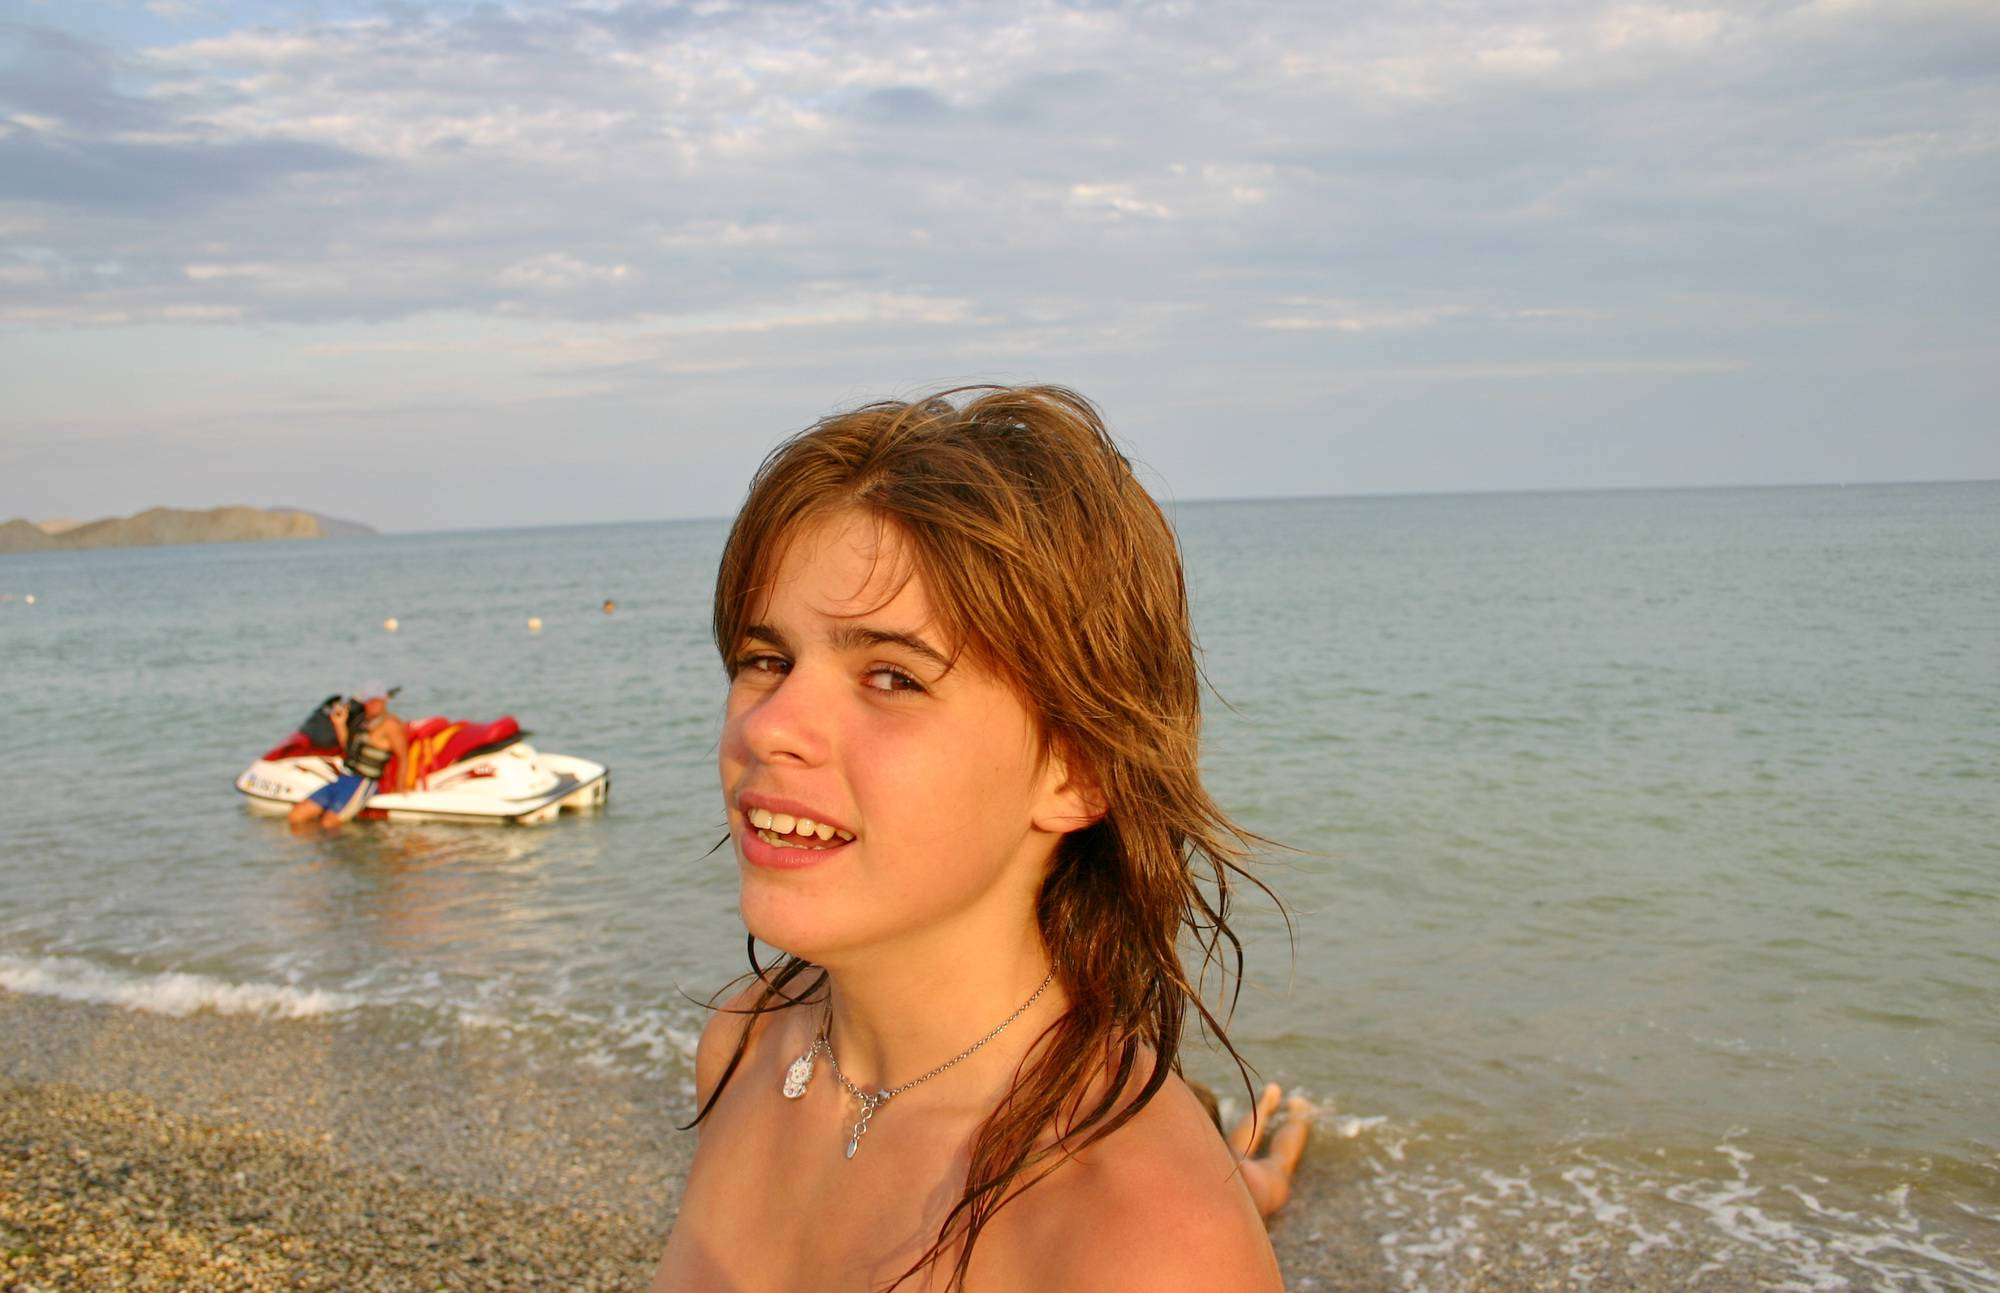 Nudist Pictures Beach and Boating Profiles - 1